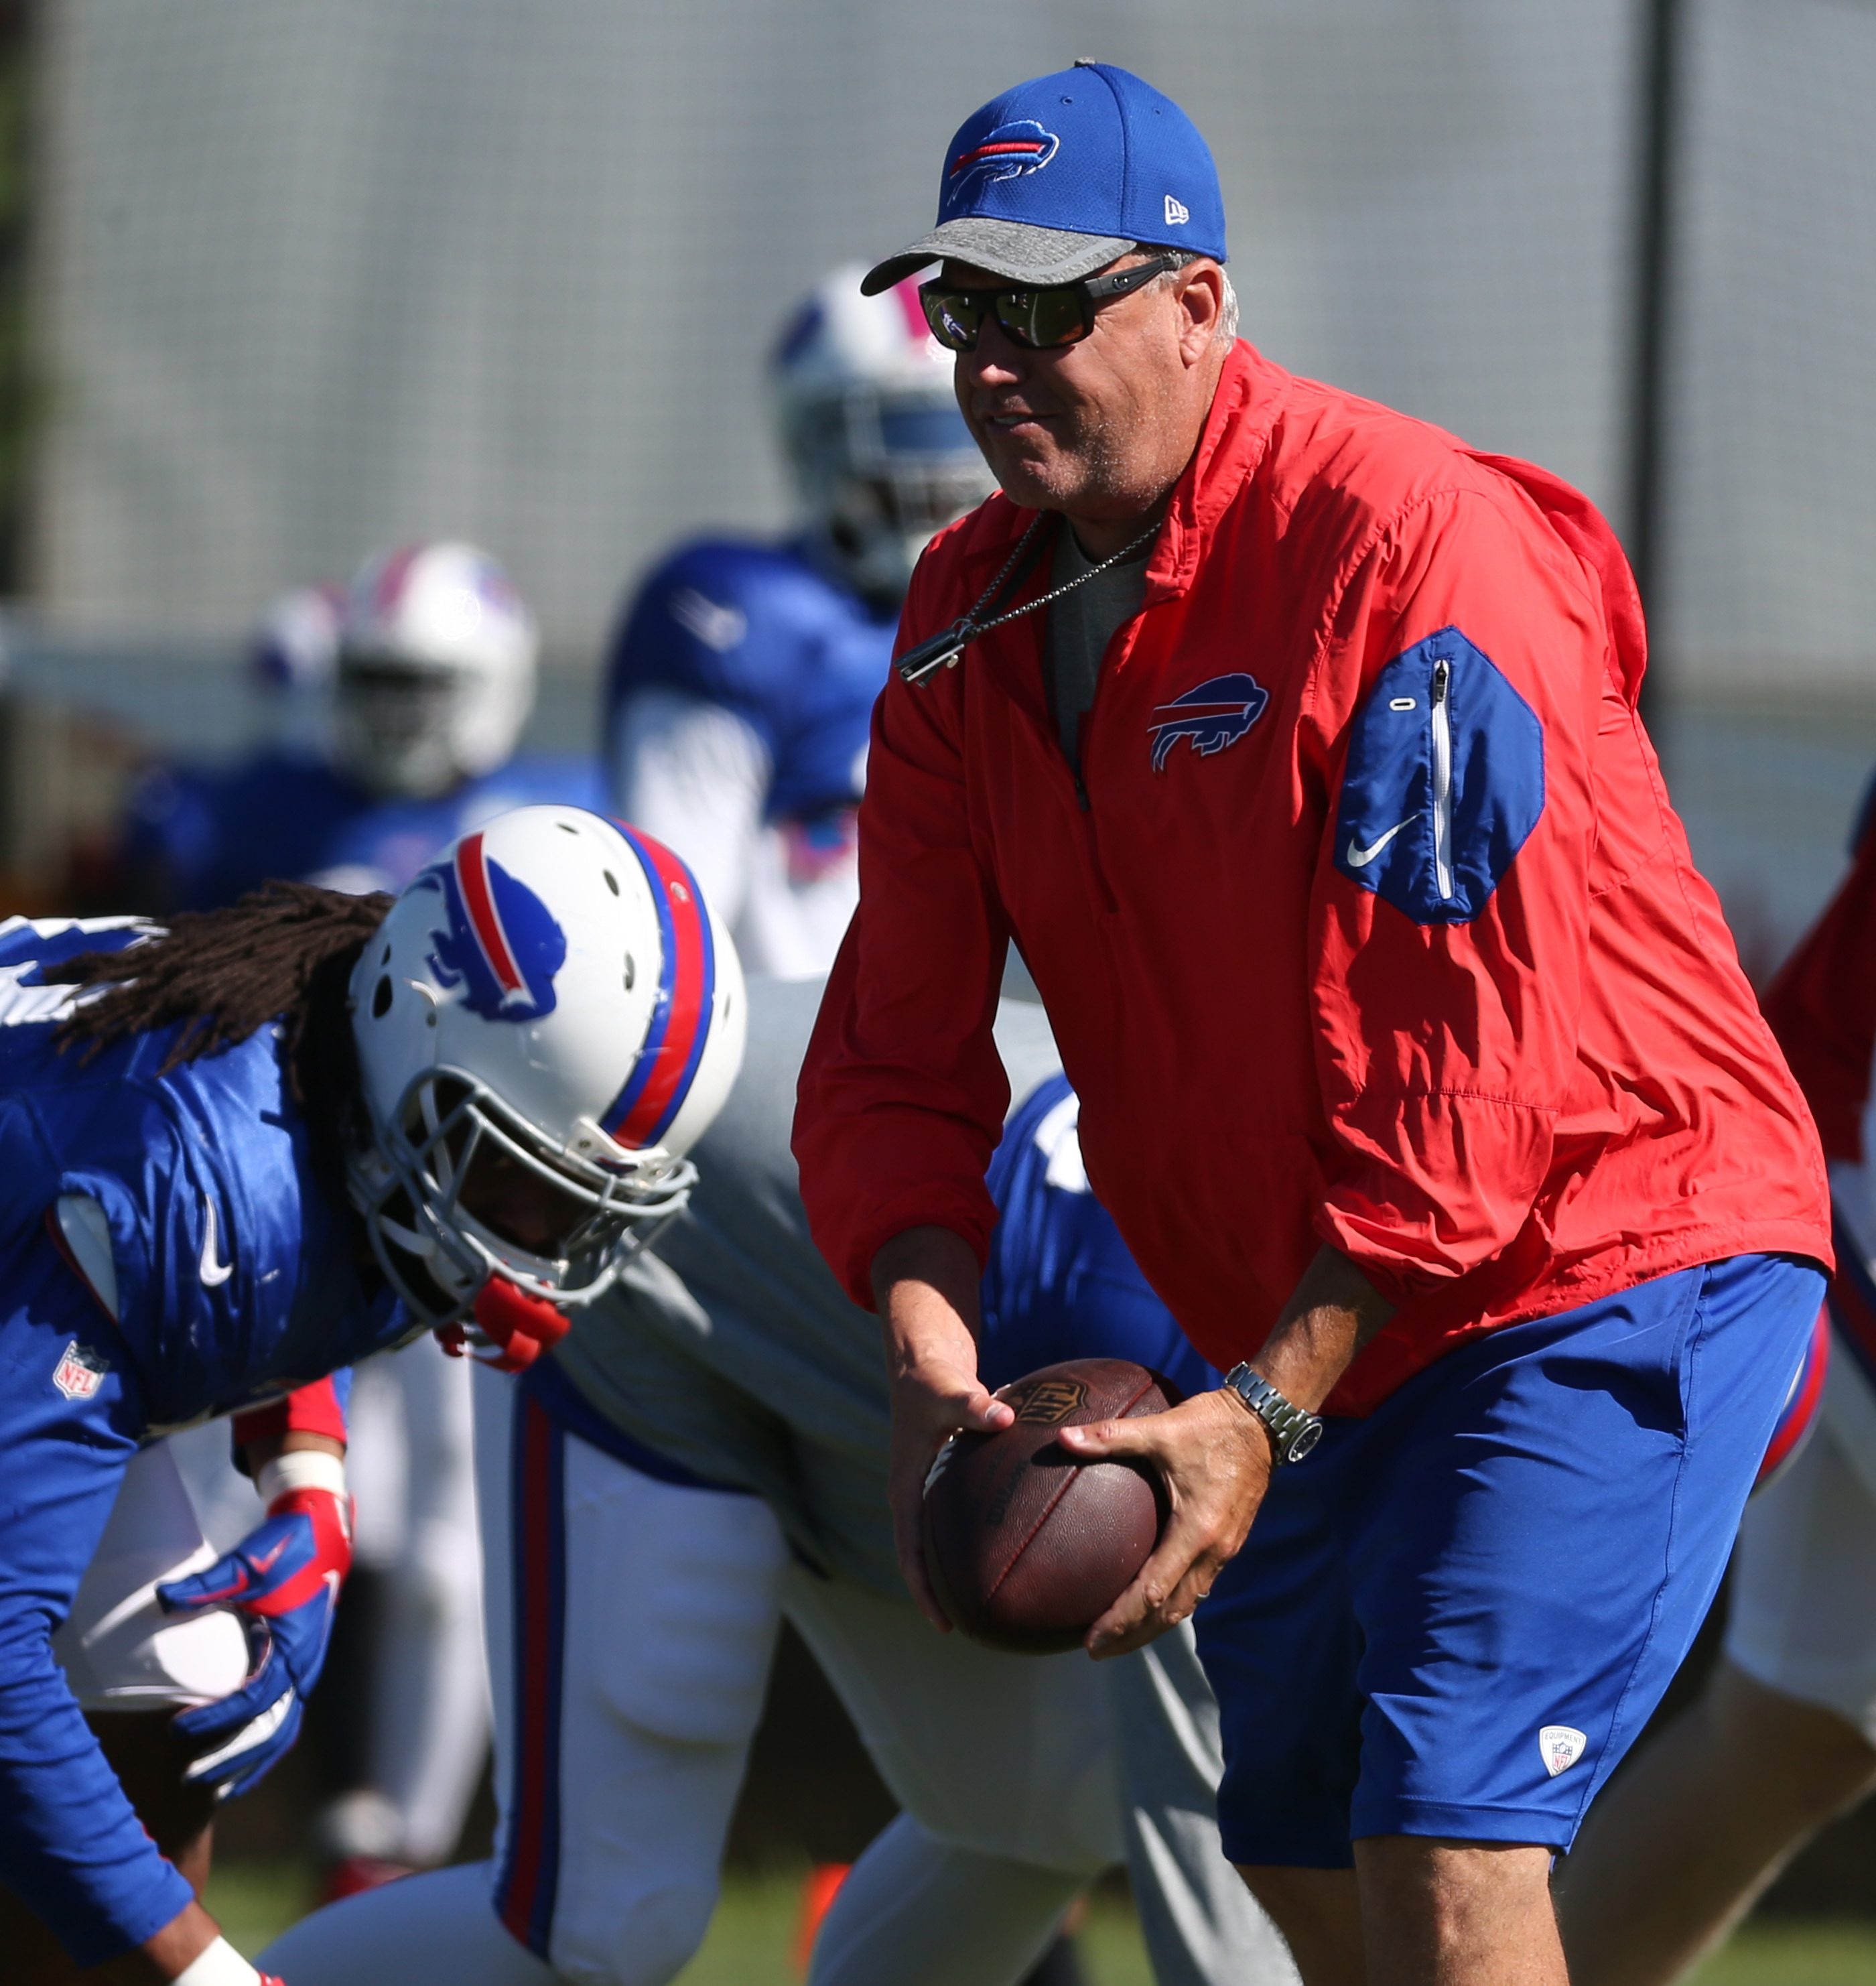 Buffalo Bills head coach Rex Ryan directs his team in a drill during the last day of training camp at St. John Fisher College in Pittsford,NY on Tuesday, Aug. 23, 2016.  (James P. McCoy/ Buffalo News)